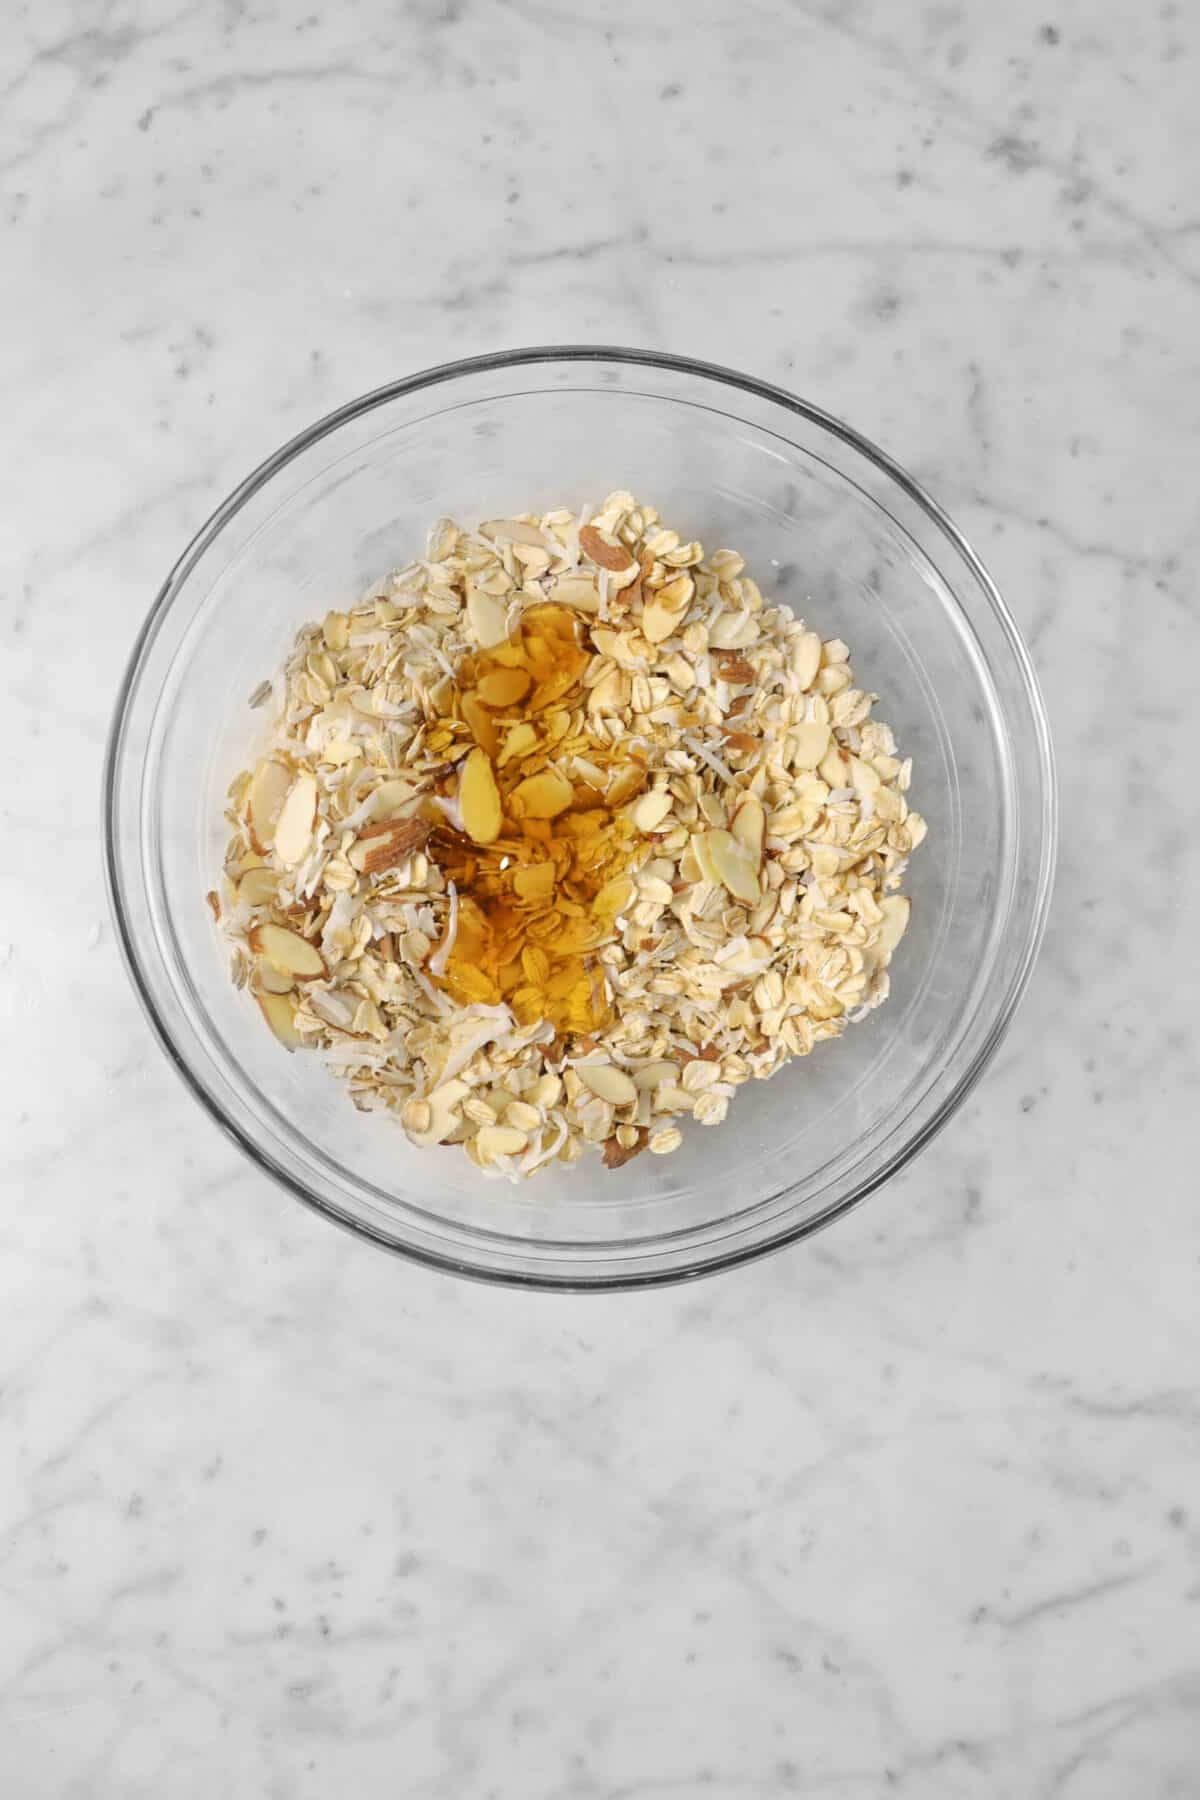 honey and oil added to oatmeal mixture